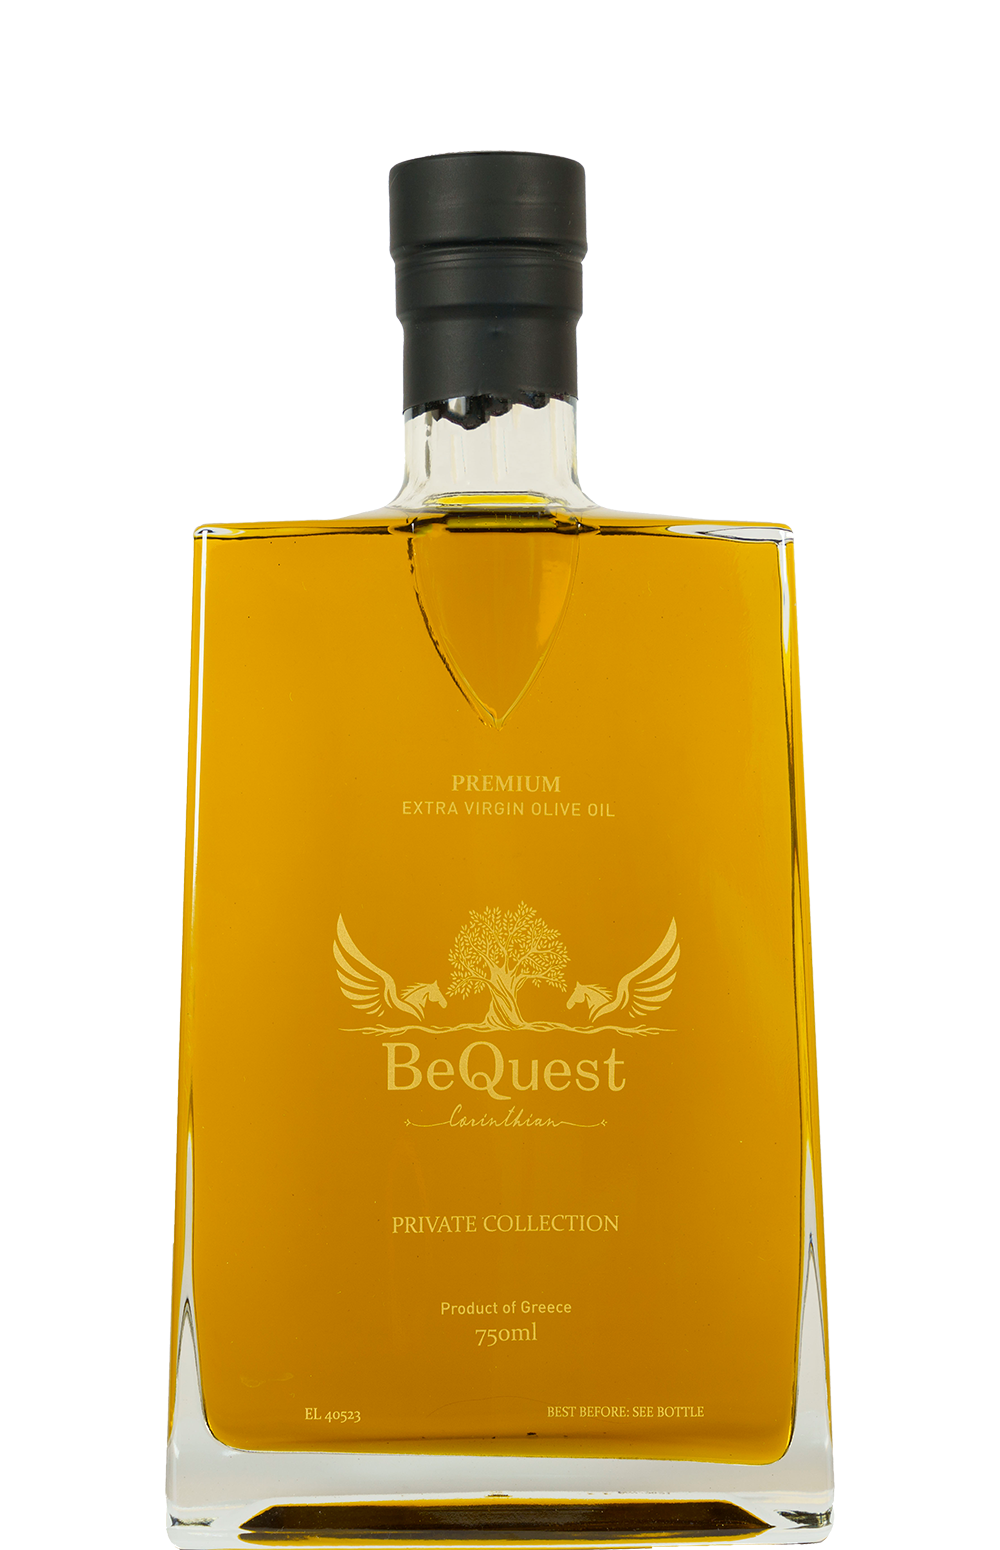 BeQuest